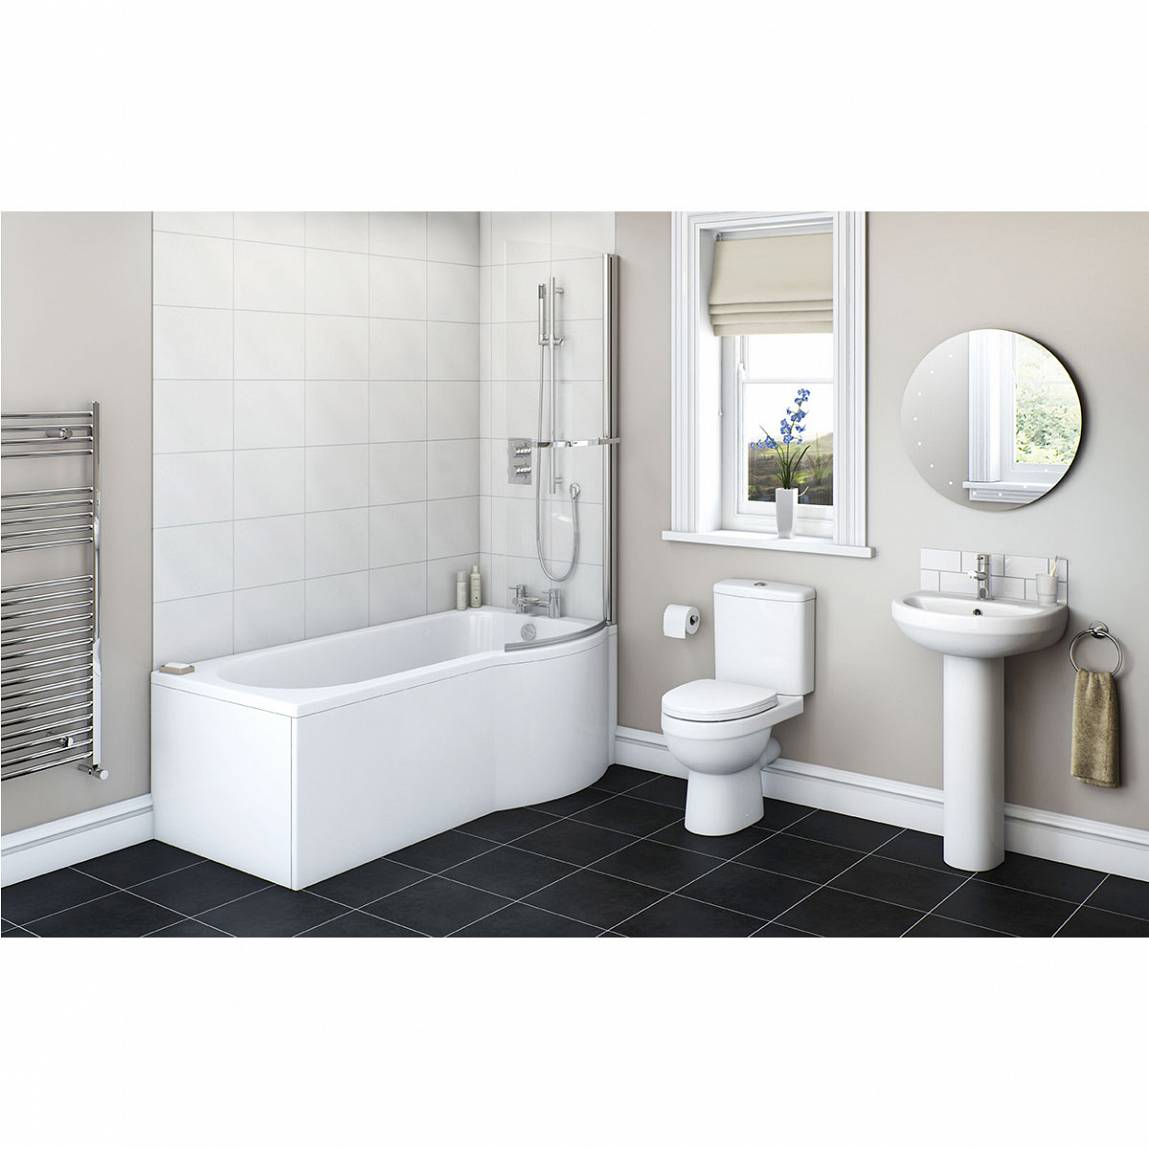 Image of Energy Bathroom Suite with Evesham 1700 x 850 Shower Bath RH